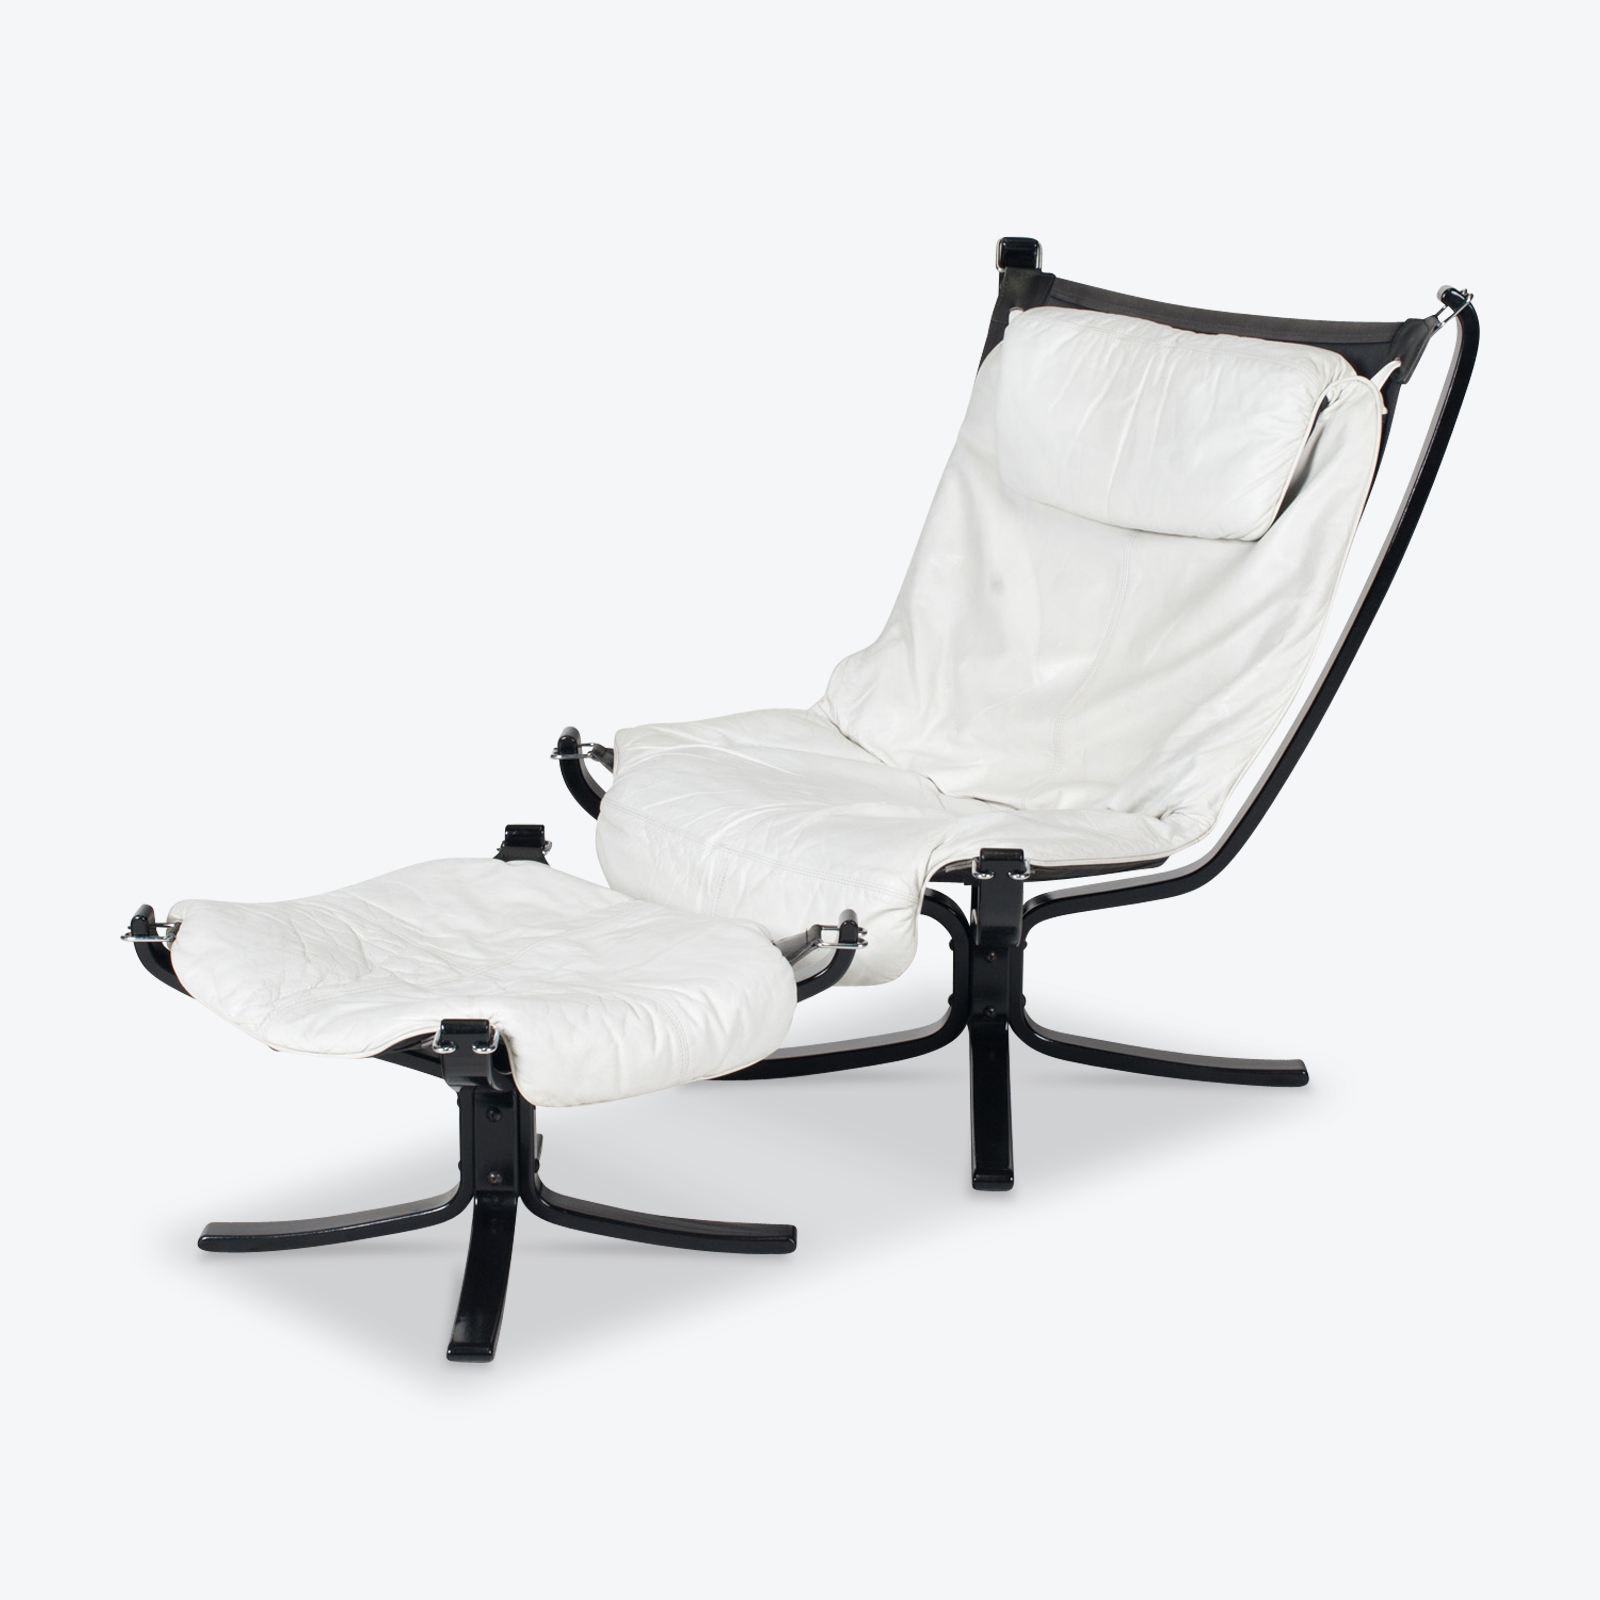 High Back Falcon Armchair By Sigurd Ressell For Vatne Mobler In Patinated White Leather With Footstool 1970s Norway 01